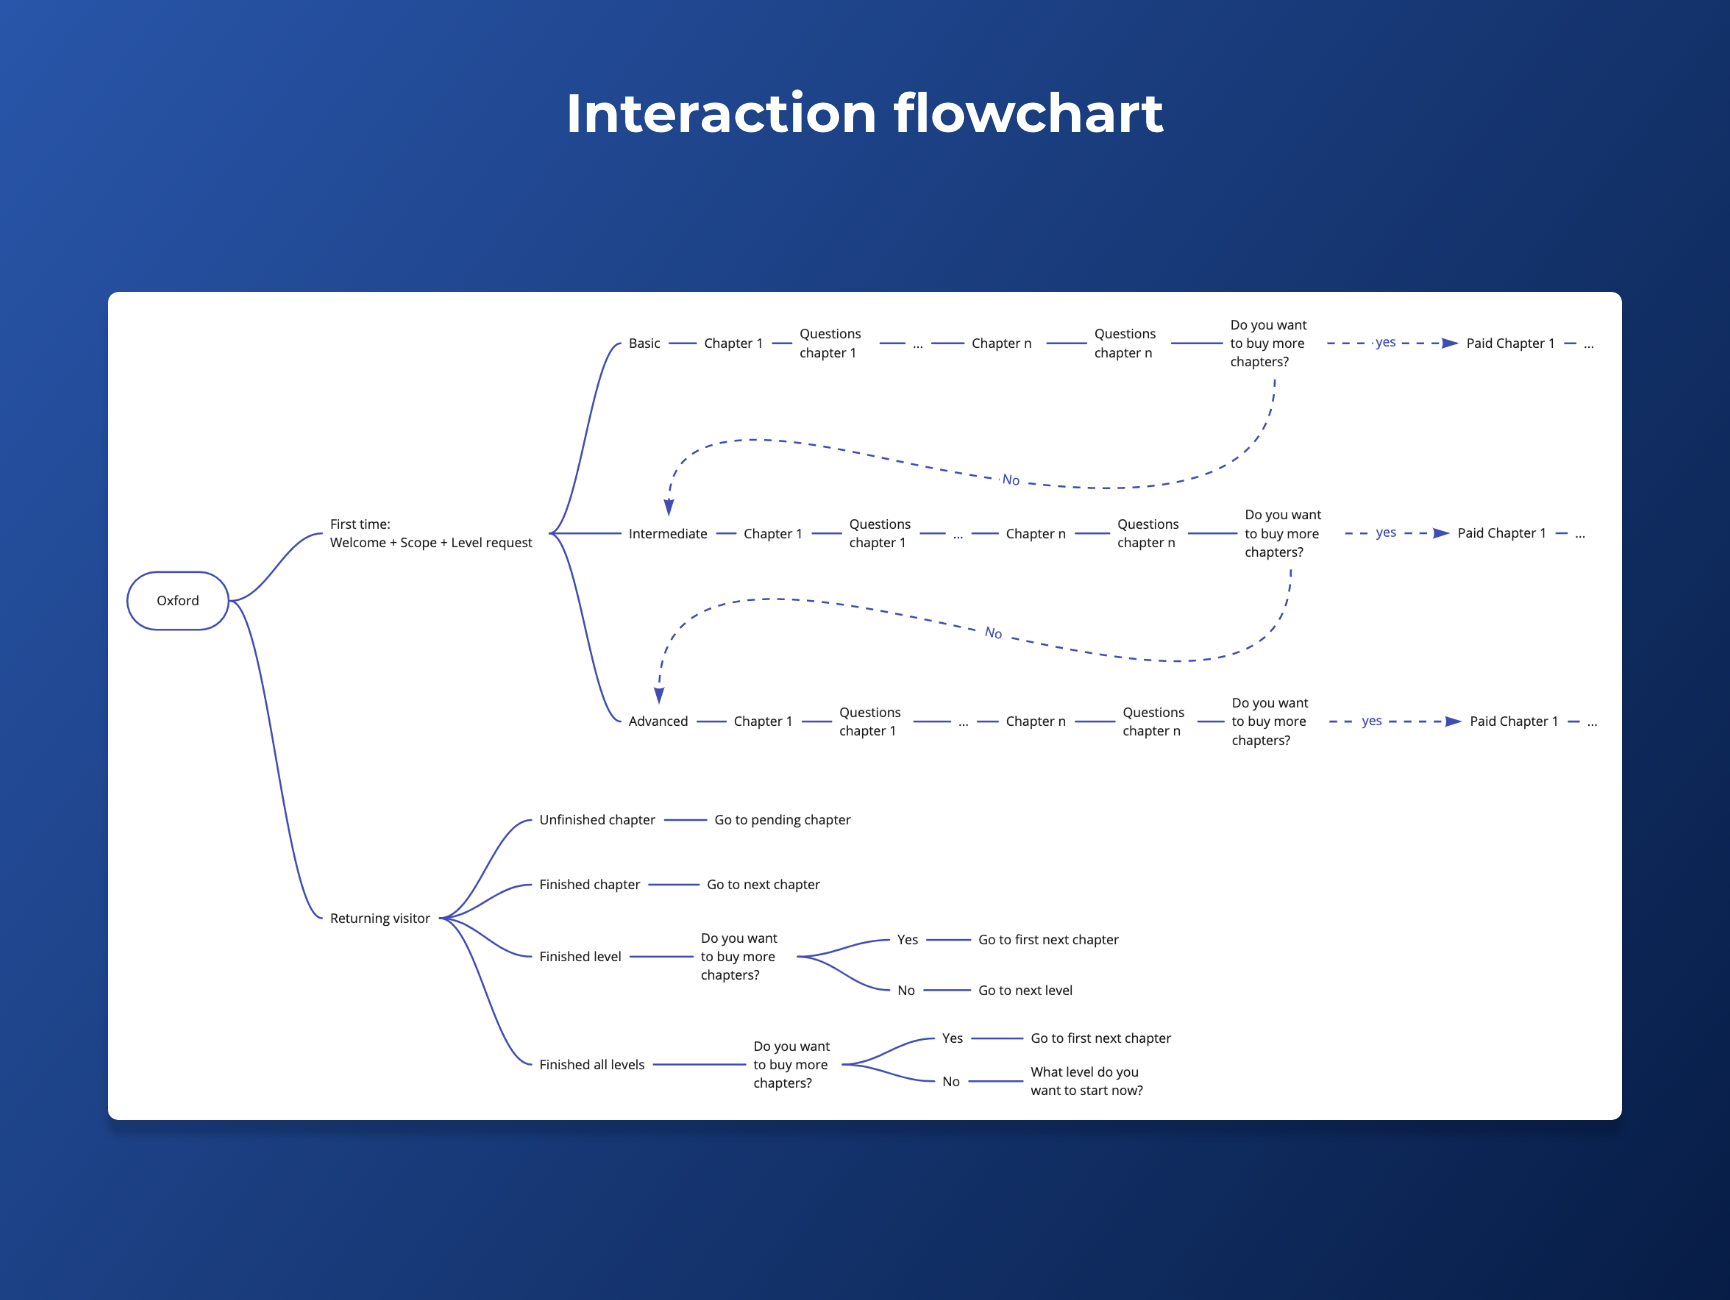 interaction flowchart for the whole experience